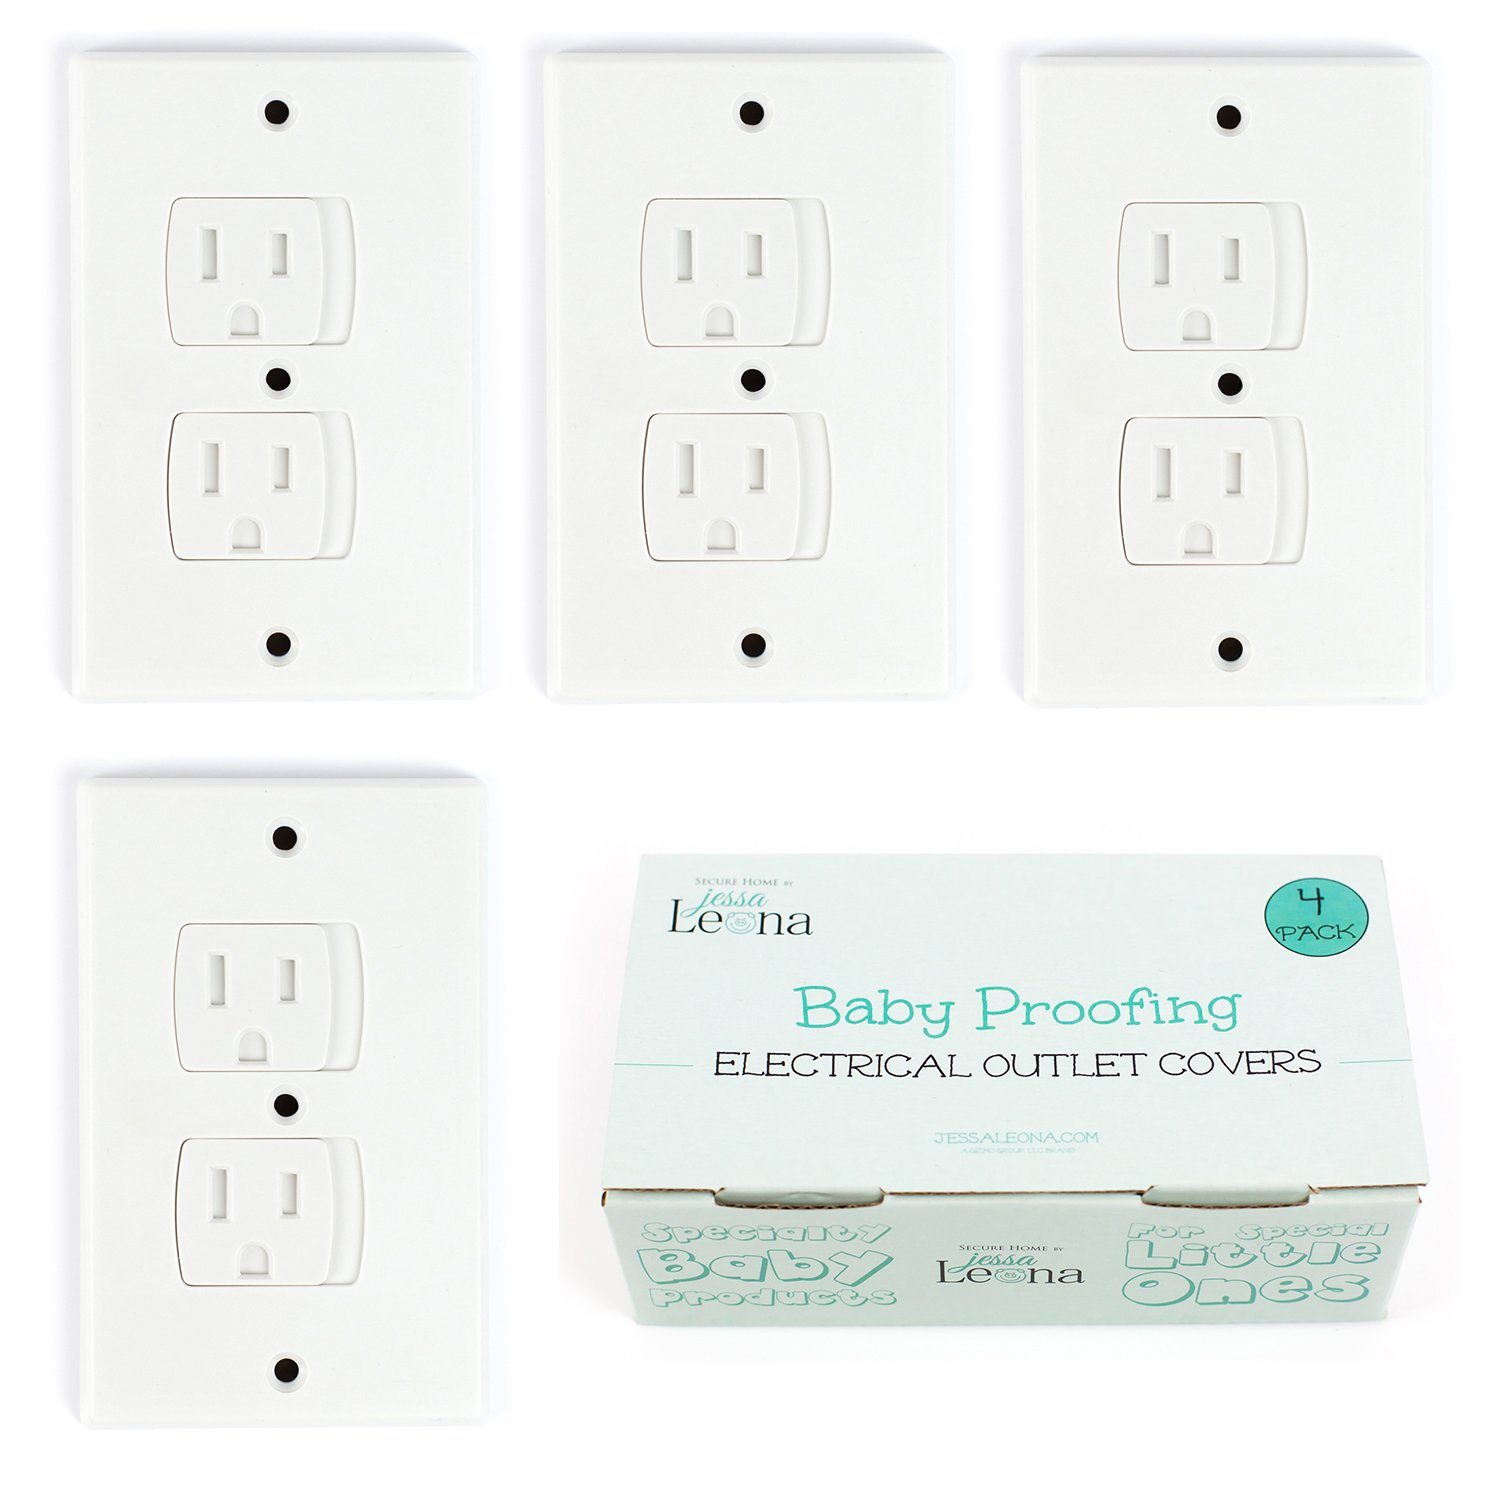 Self-Closing Electrical Outlet Covers for Baby Proofing | Automatic Sliding Electrical Safety Covers | Socket Plugs Alternate (4 Pack, White) Jessa Leona Baby